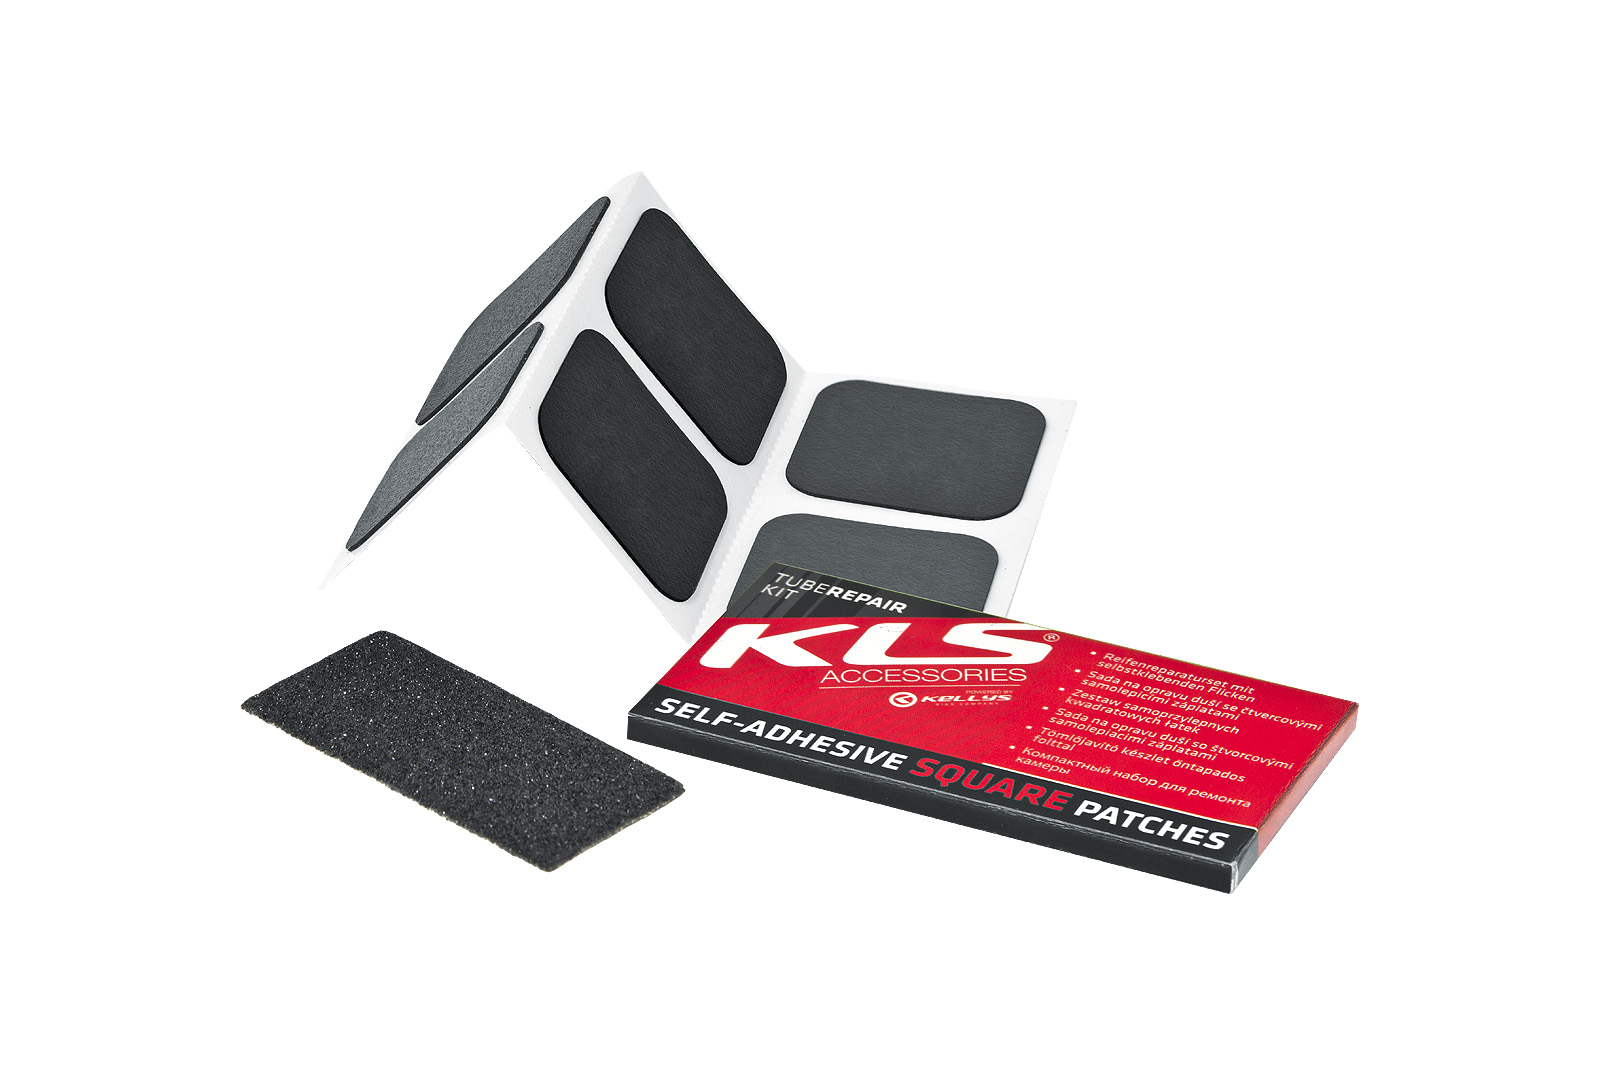 TUBE REPAIR KIT WITH SELF-ADHESIVE SQUARE PATCHES